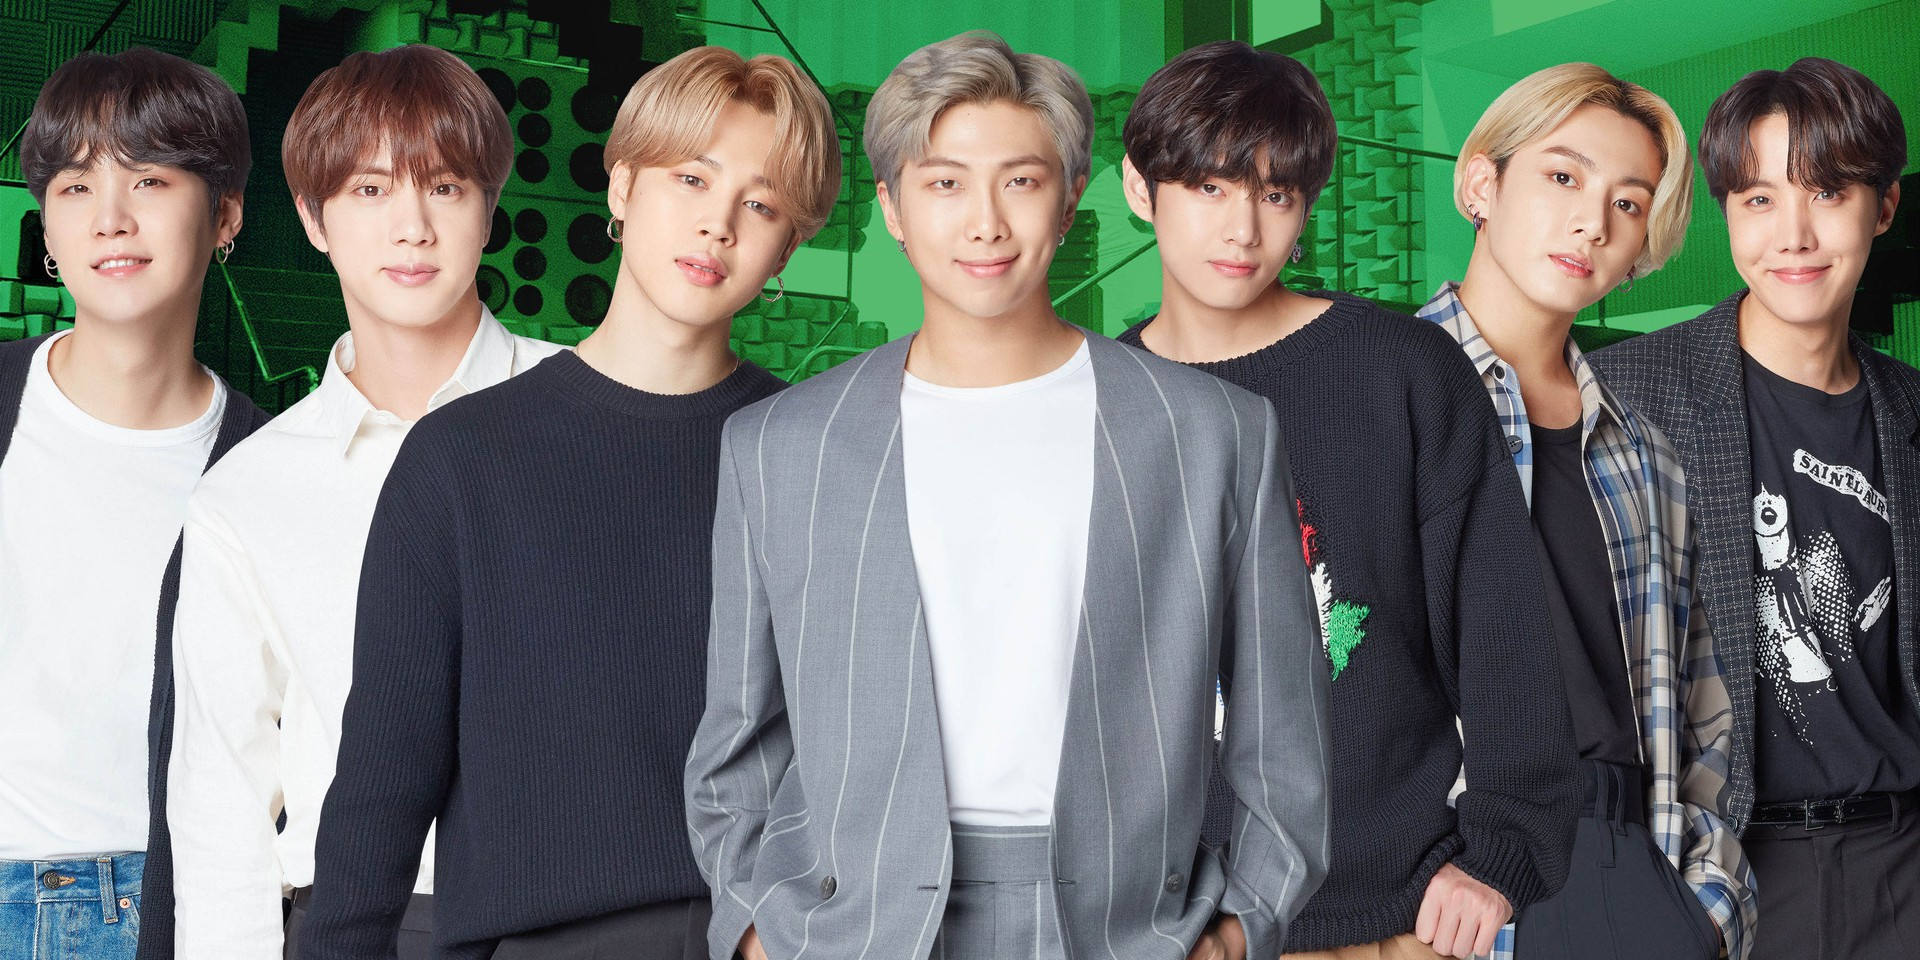 """From photocards to digital lightsticks, plus exclusive content, here's what you need to know about BTS' """"passion with purpose"""" campaign"""